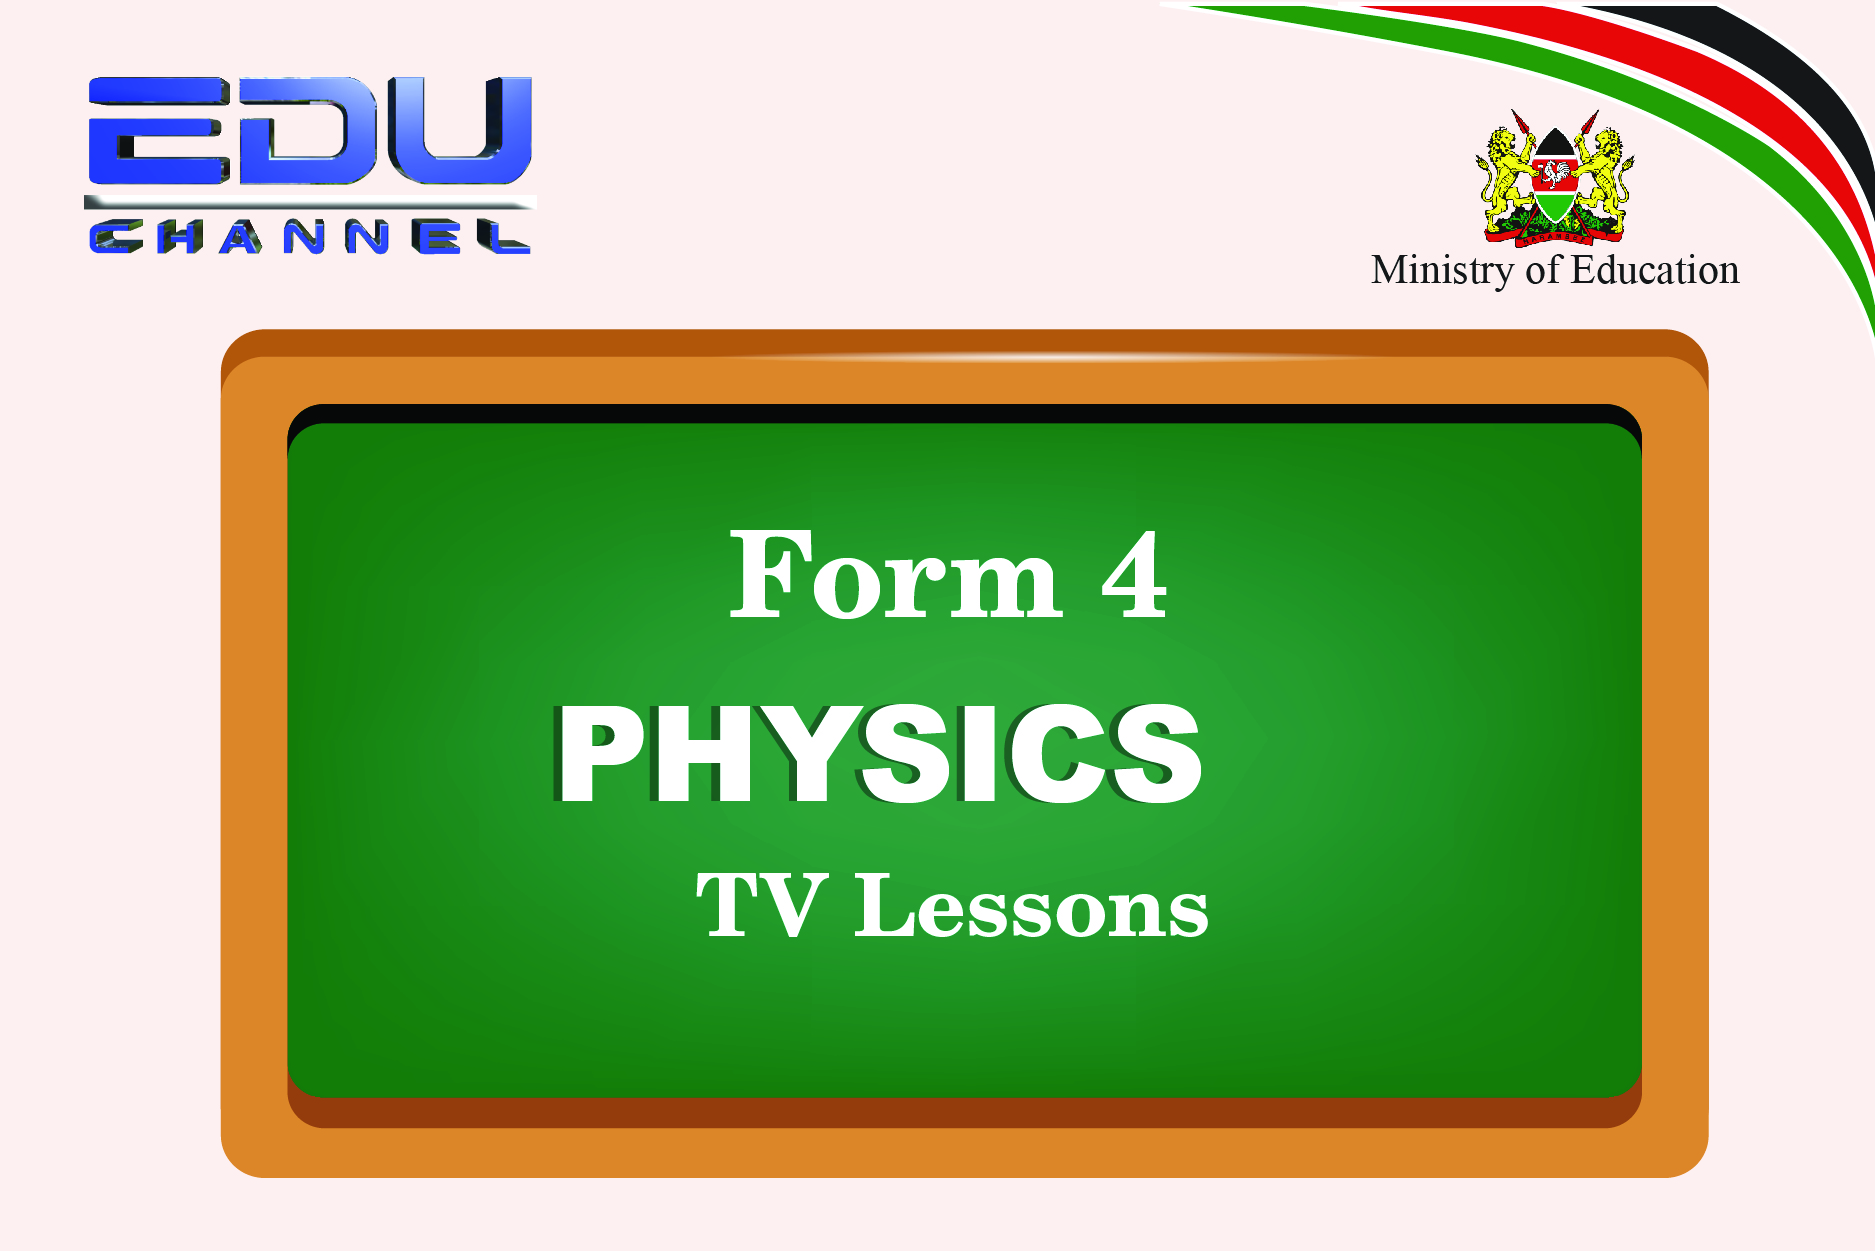 Form 4 physics Lesson 13: Xrays : Uses ofXrays